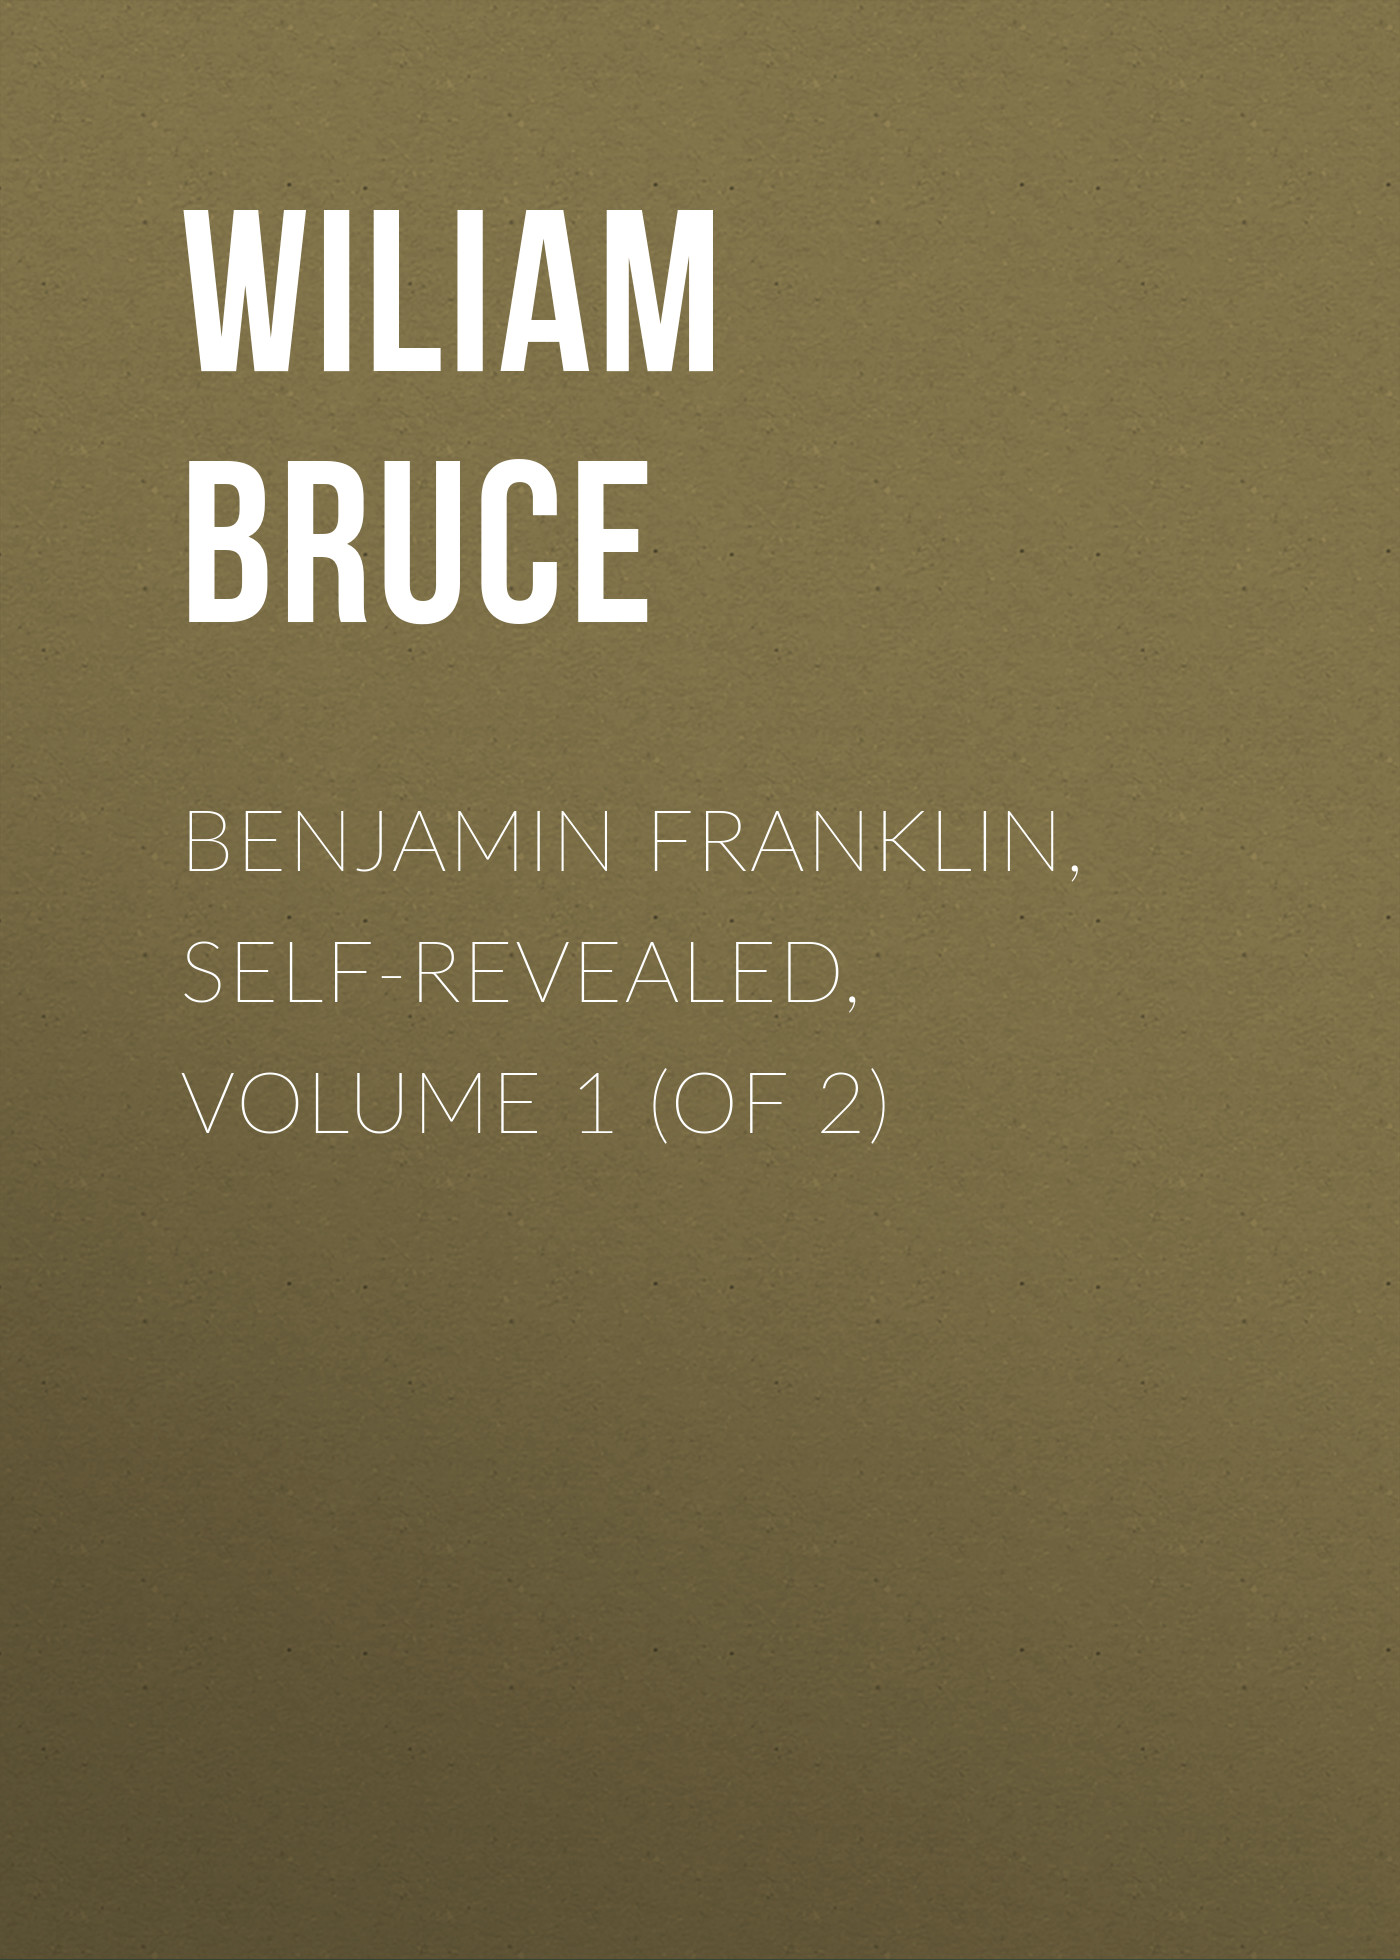 Bruce Wiliam Cabell Benjamin Franklin, Self-Revealed, Volume 1 (of 2) бенджамин франклин memoirs of benjamin franklin written by himself [vol 1 of 2]